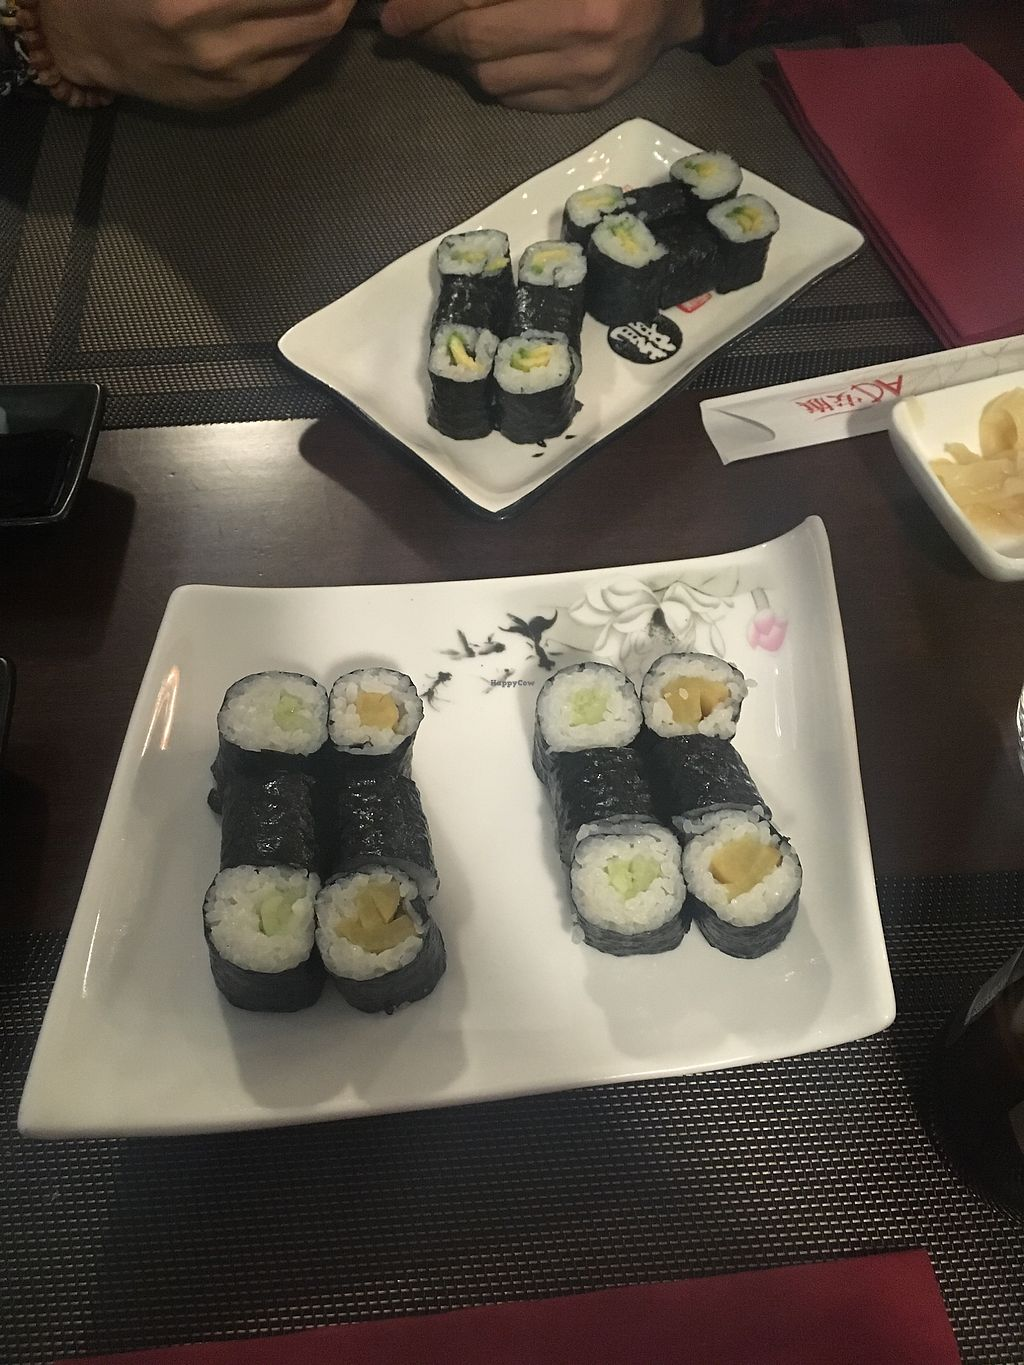 """Photo of U Sushi  by <a href=""""/members/profile/_zelisa"""">_zelisa</a> <br/>Veggie rolls  <br/> March 3, 2018  - <a href='/contact/abuse/image/92408/366249'>Report</a>"""